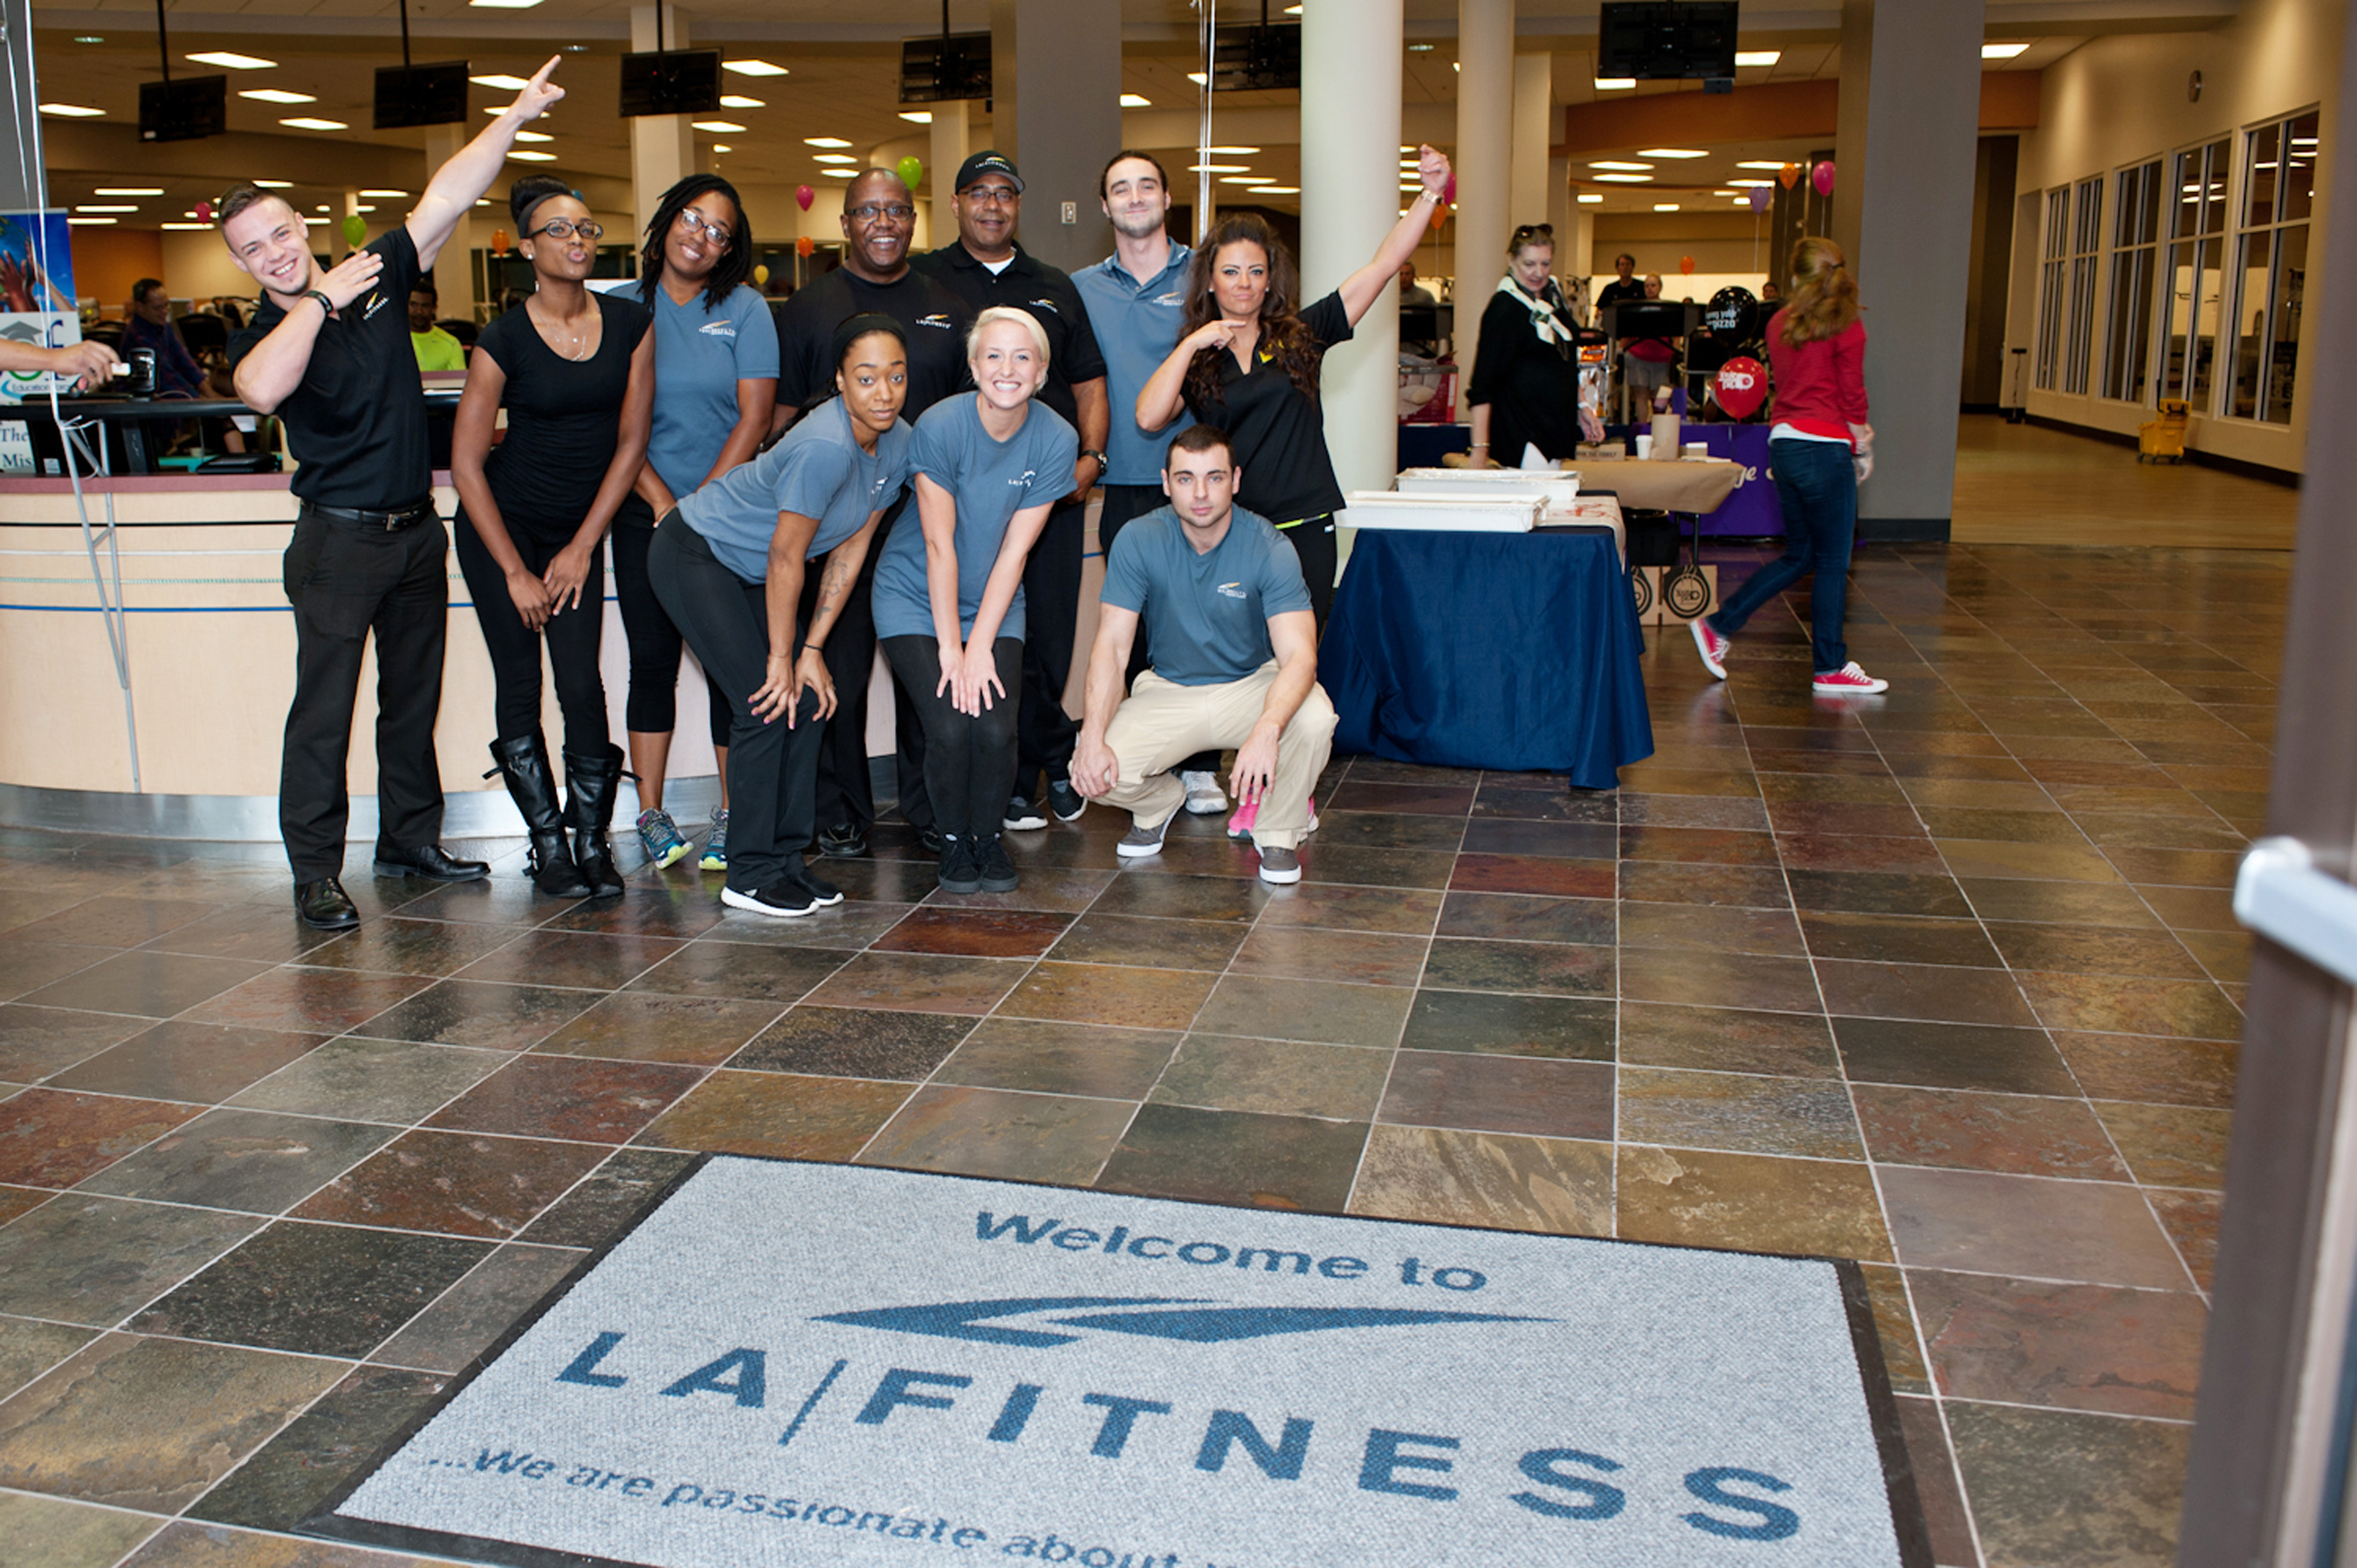 la fitness For the eighth consecutive year, la fitness is supporting augie's quest to help find a cure for als throughout the month of february we're asking all who wish to participate, to donate to this life-changing cause.